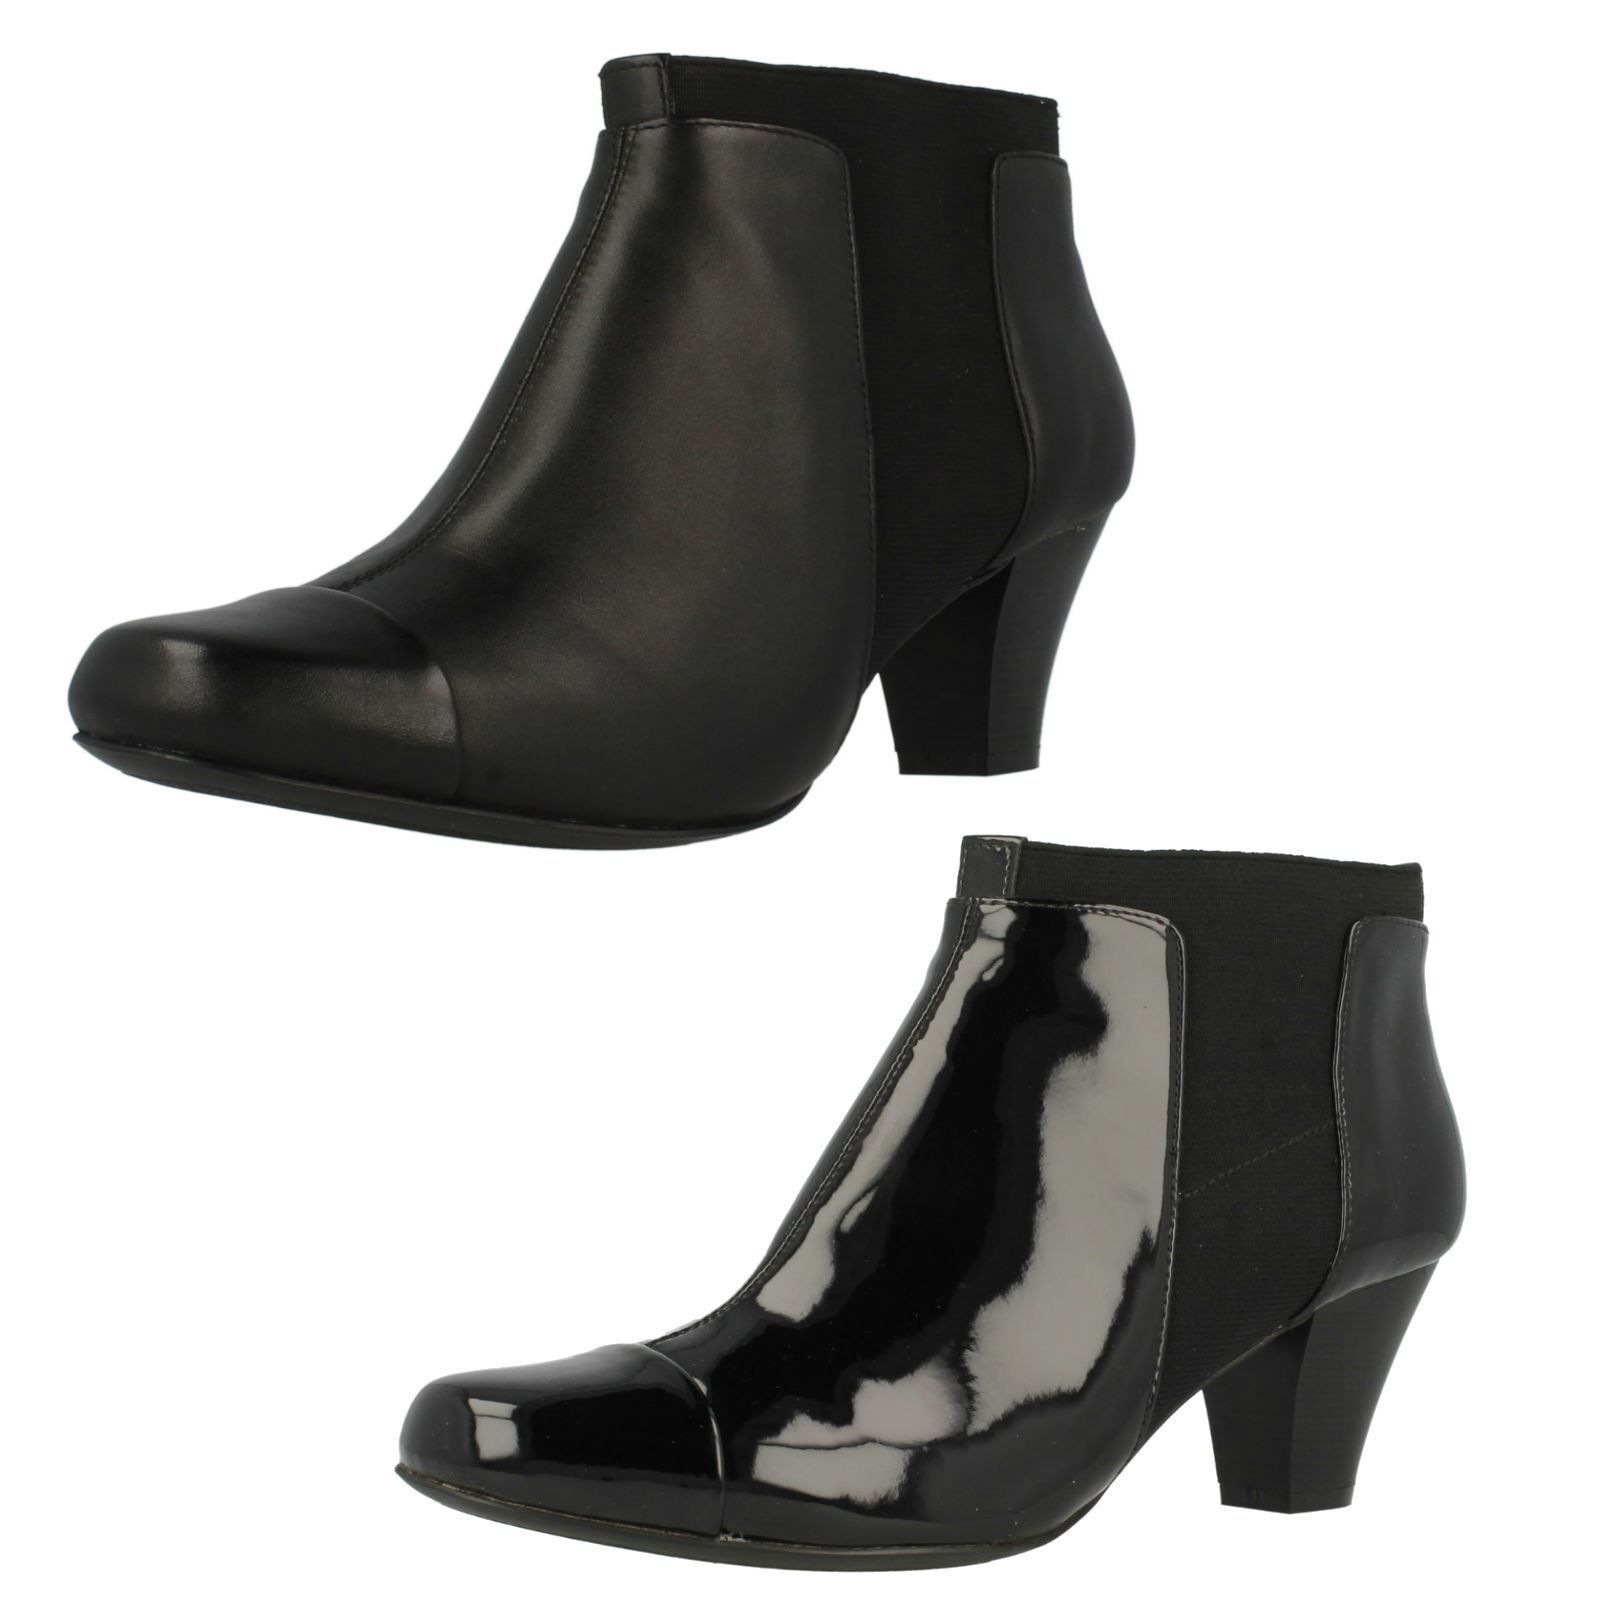 LADIES CLARKS PATENT LEATHER PULL ON SMART CHELSEA ANKLE BOOTS LODGE GATES SIZE